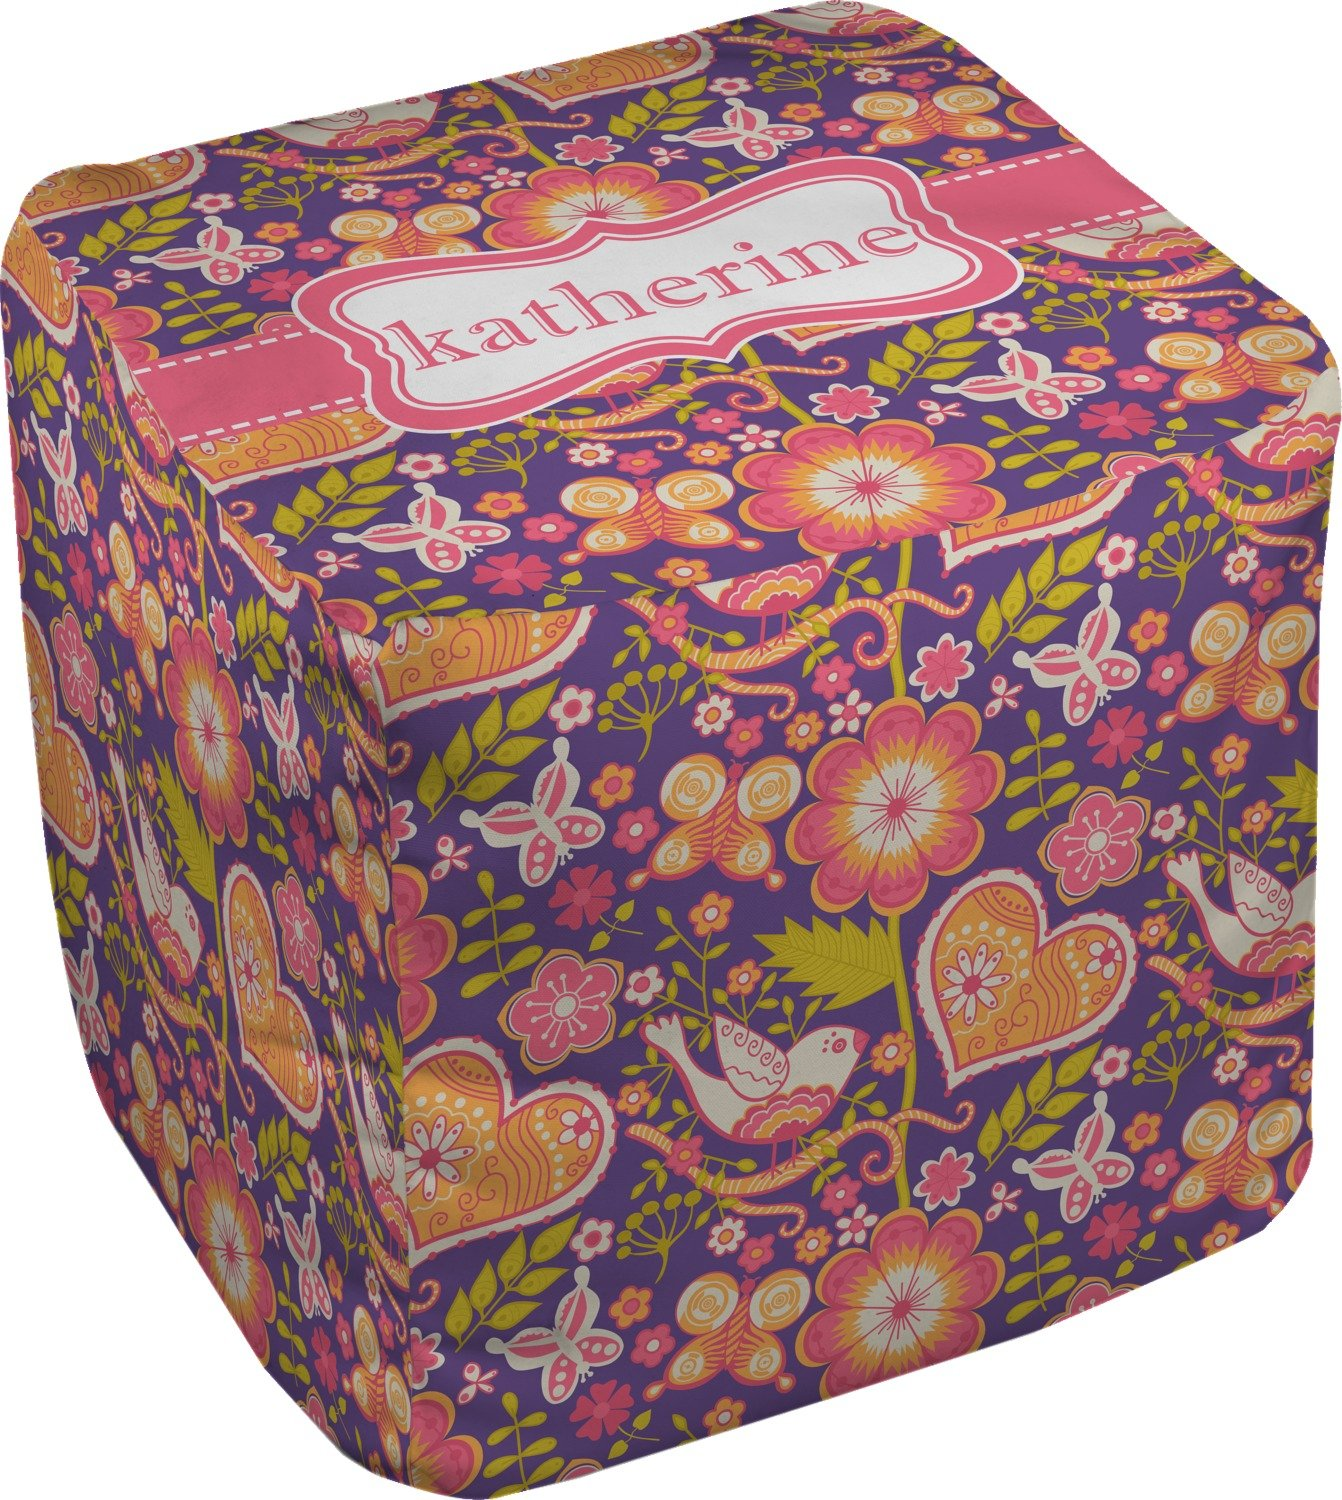 RNK Shops Birds & Hearts Cube Pouf Ottoman - 13'' (Personalized)